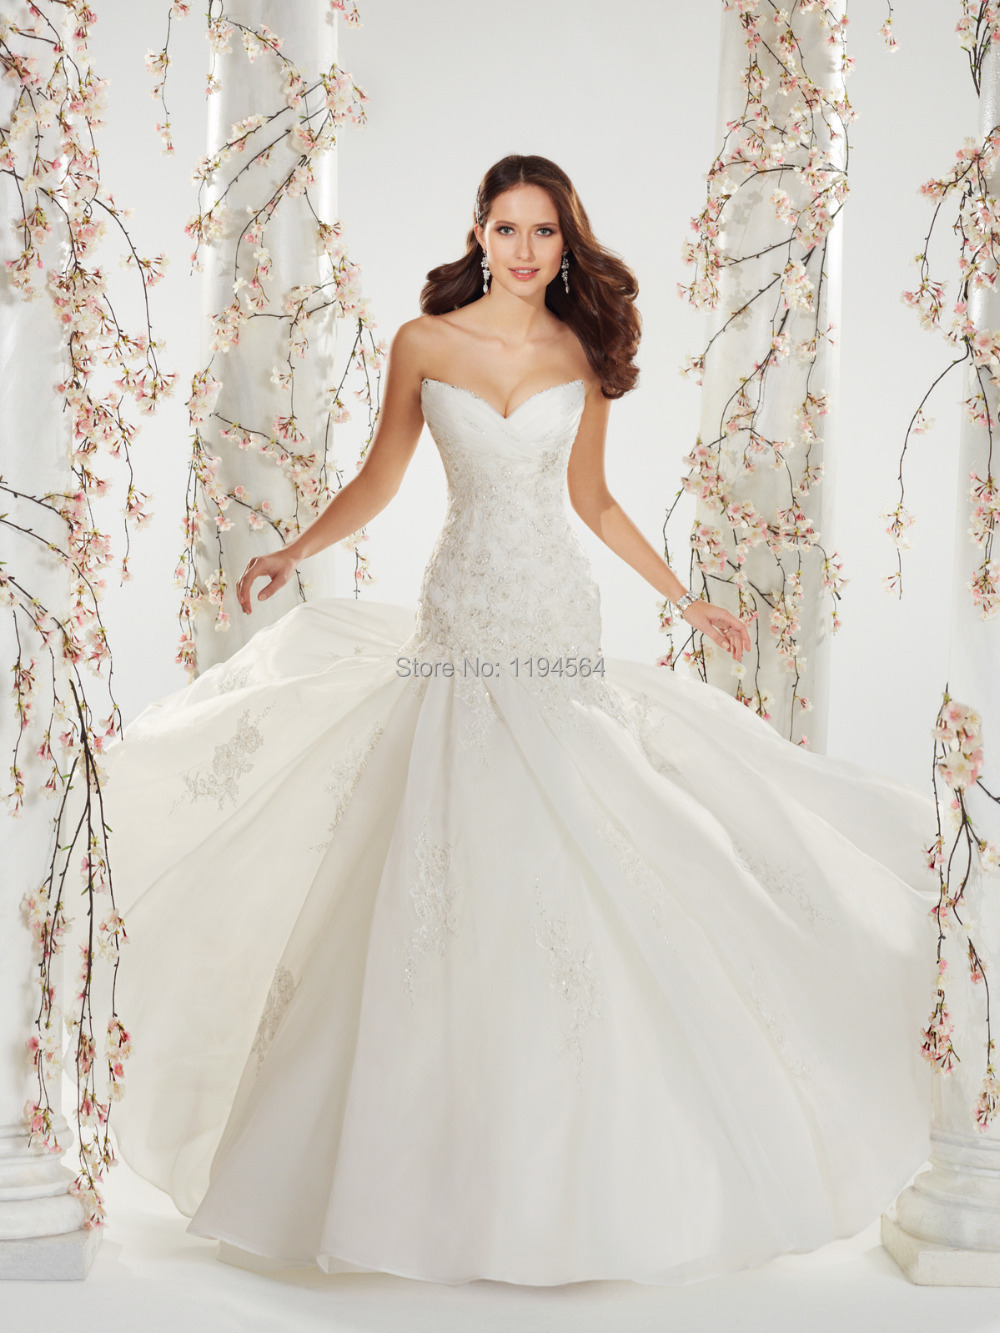 Buy Vintage 2014 A Line Wedding Dresses